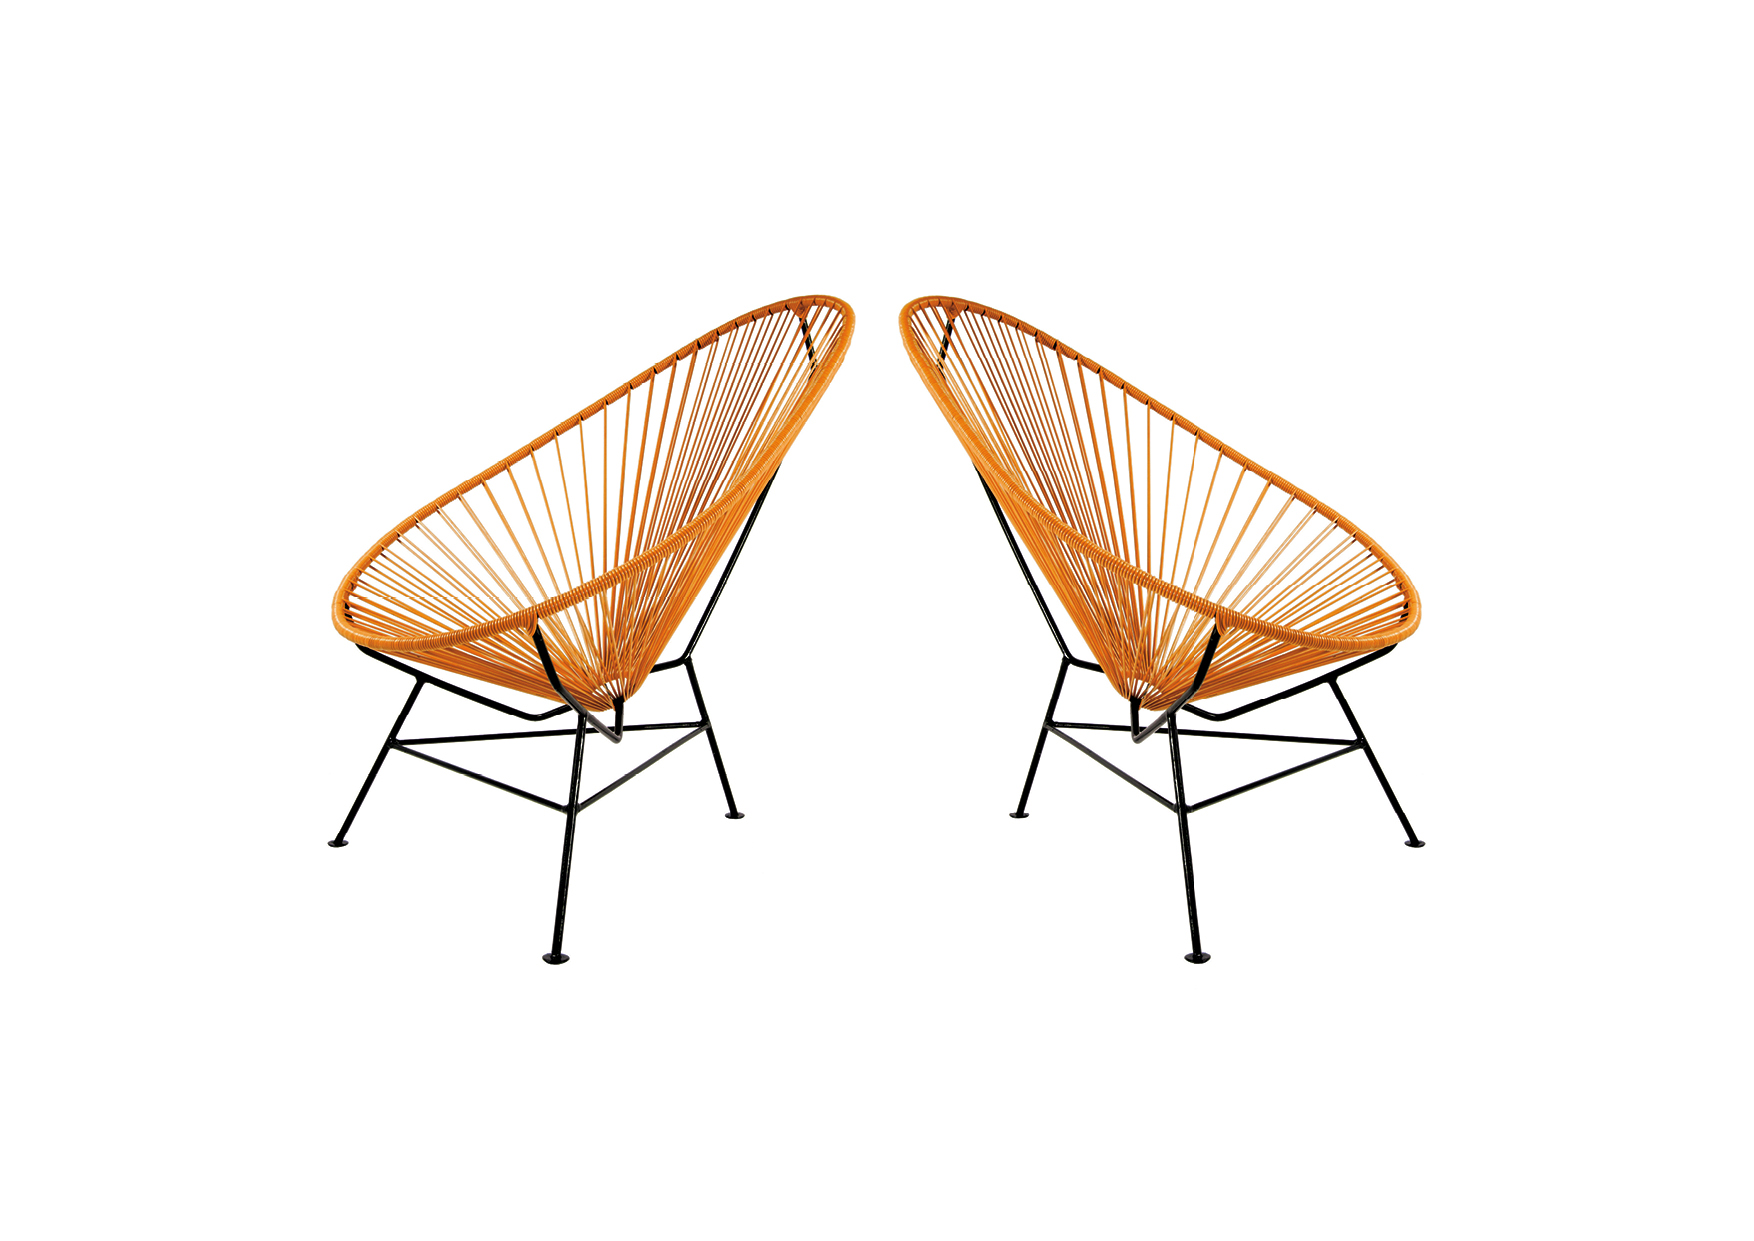 Copy of Original Acapulco Chairs - Made in Mexico